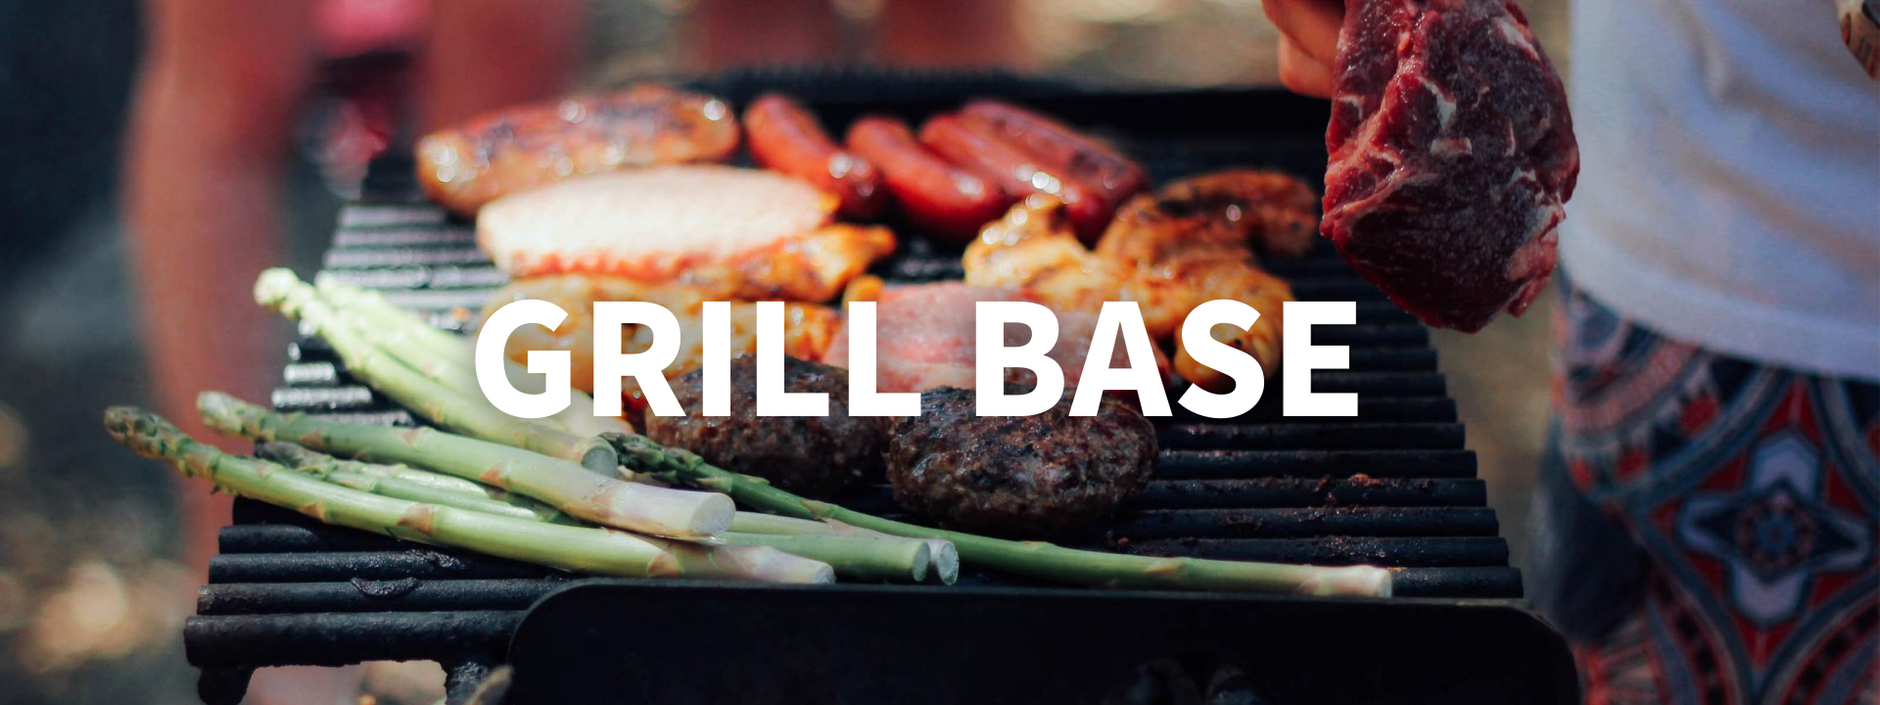 GRILL BASE